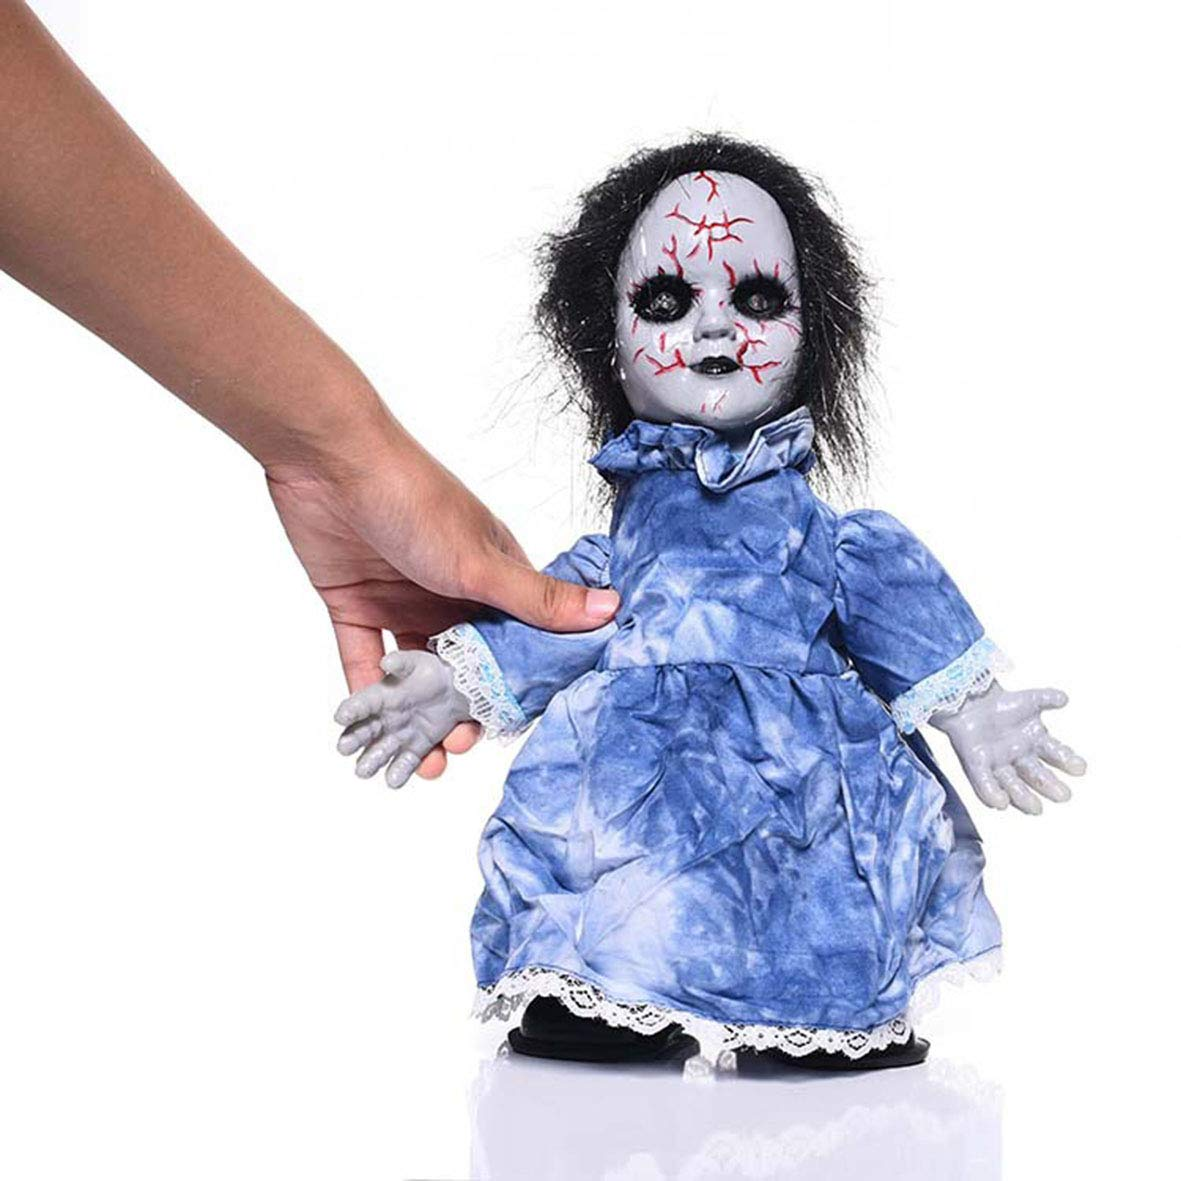 Halloween Toy Doll Binocular Glowing Electric Ghost Doll, Touch Voice Control Creepy Ghost Doll, Bar Haunted House Secret Room